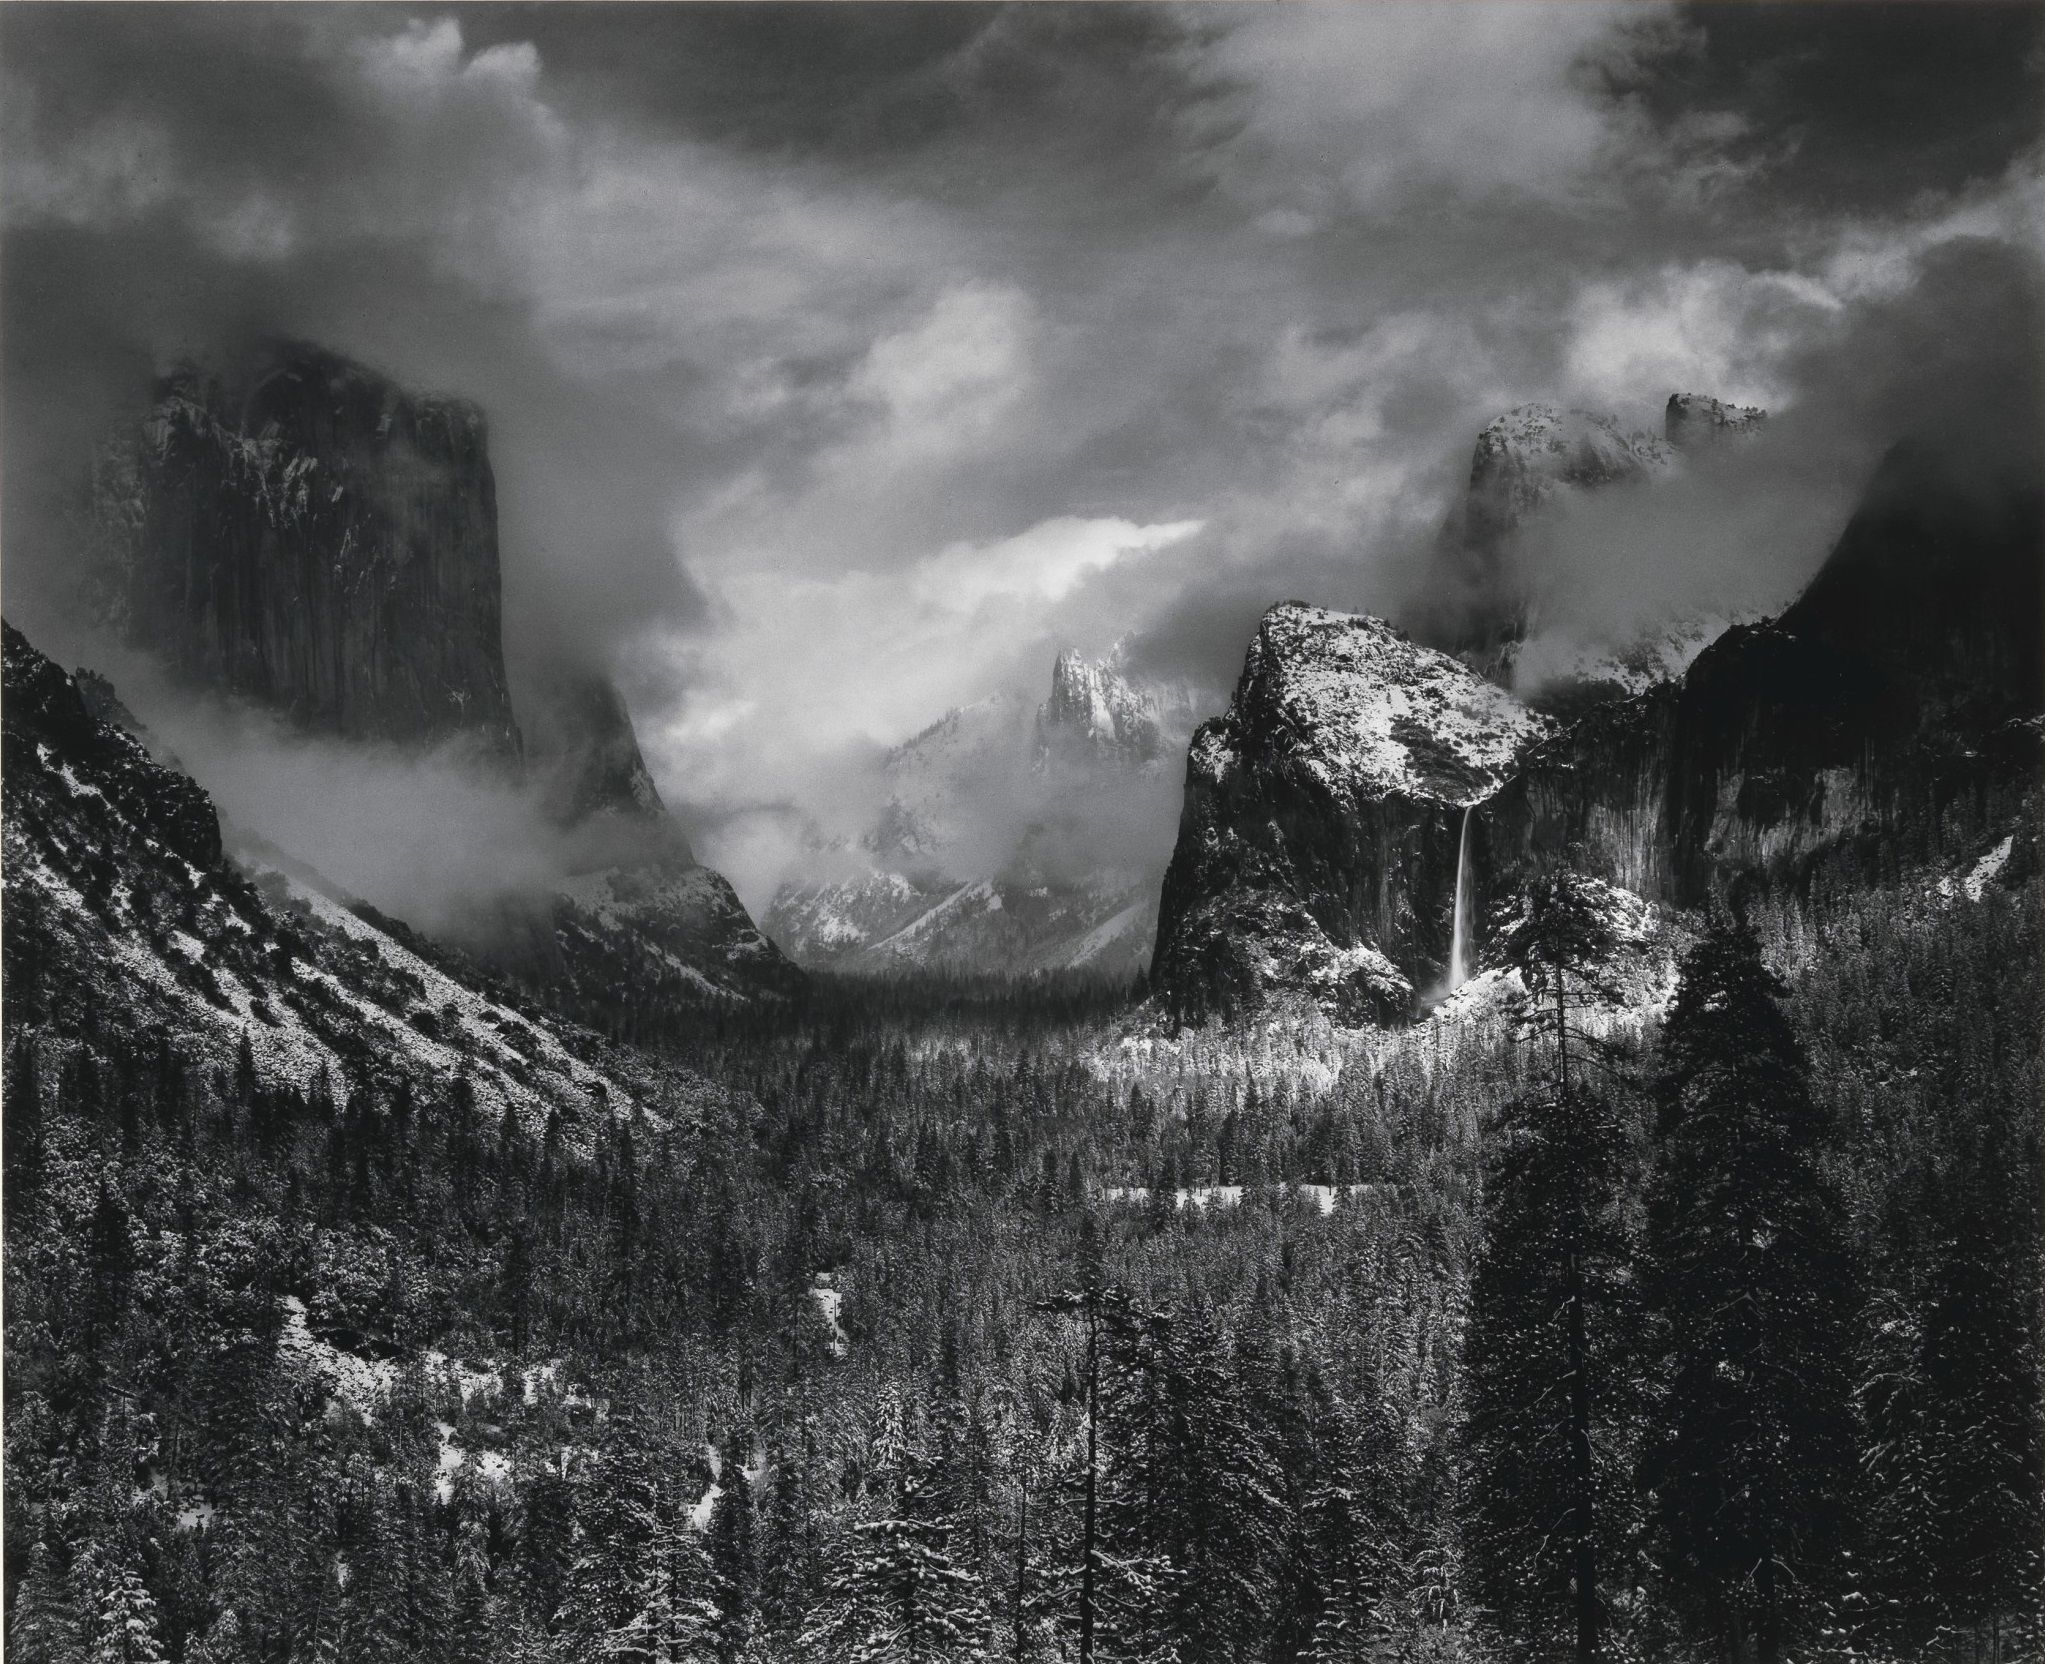 Ansel Adams, Clearing Winter Storm, Yosemite National Park, California, 1938 © Ansel Adams & MoMA